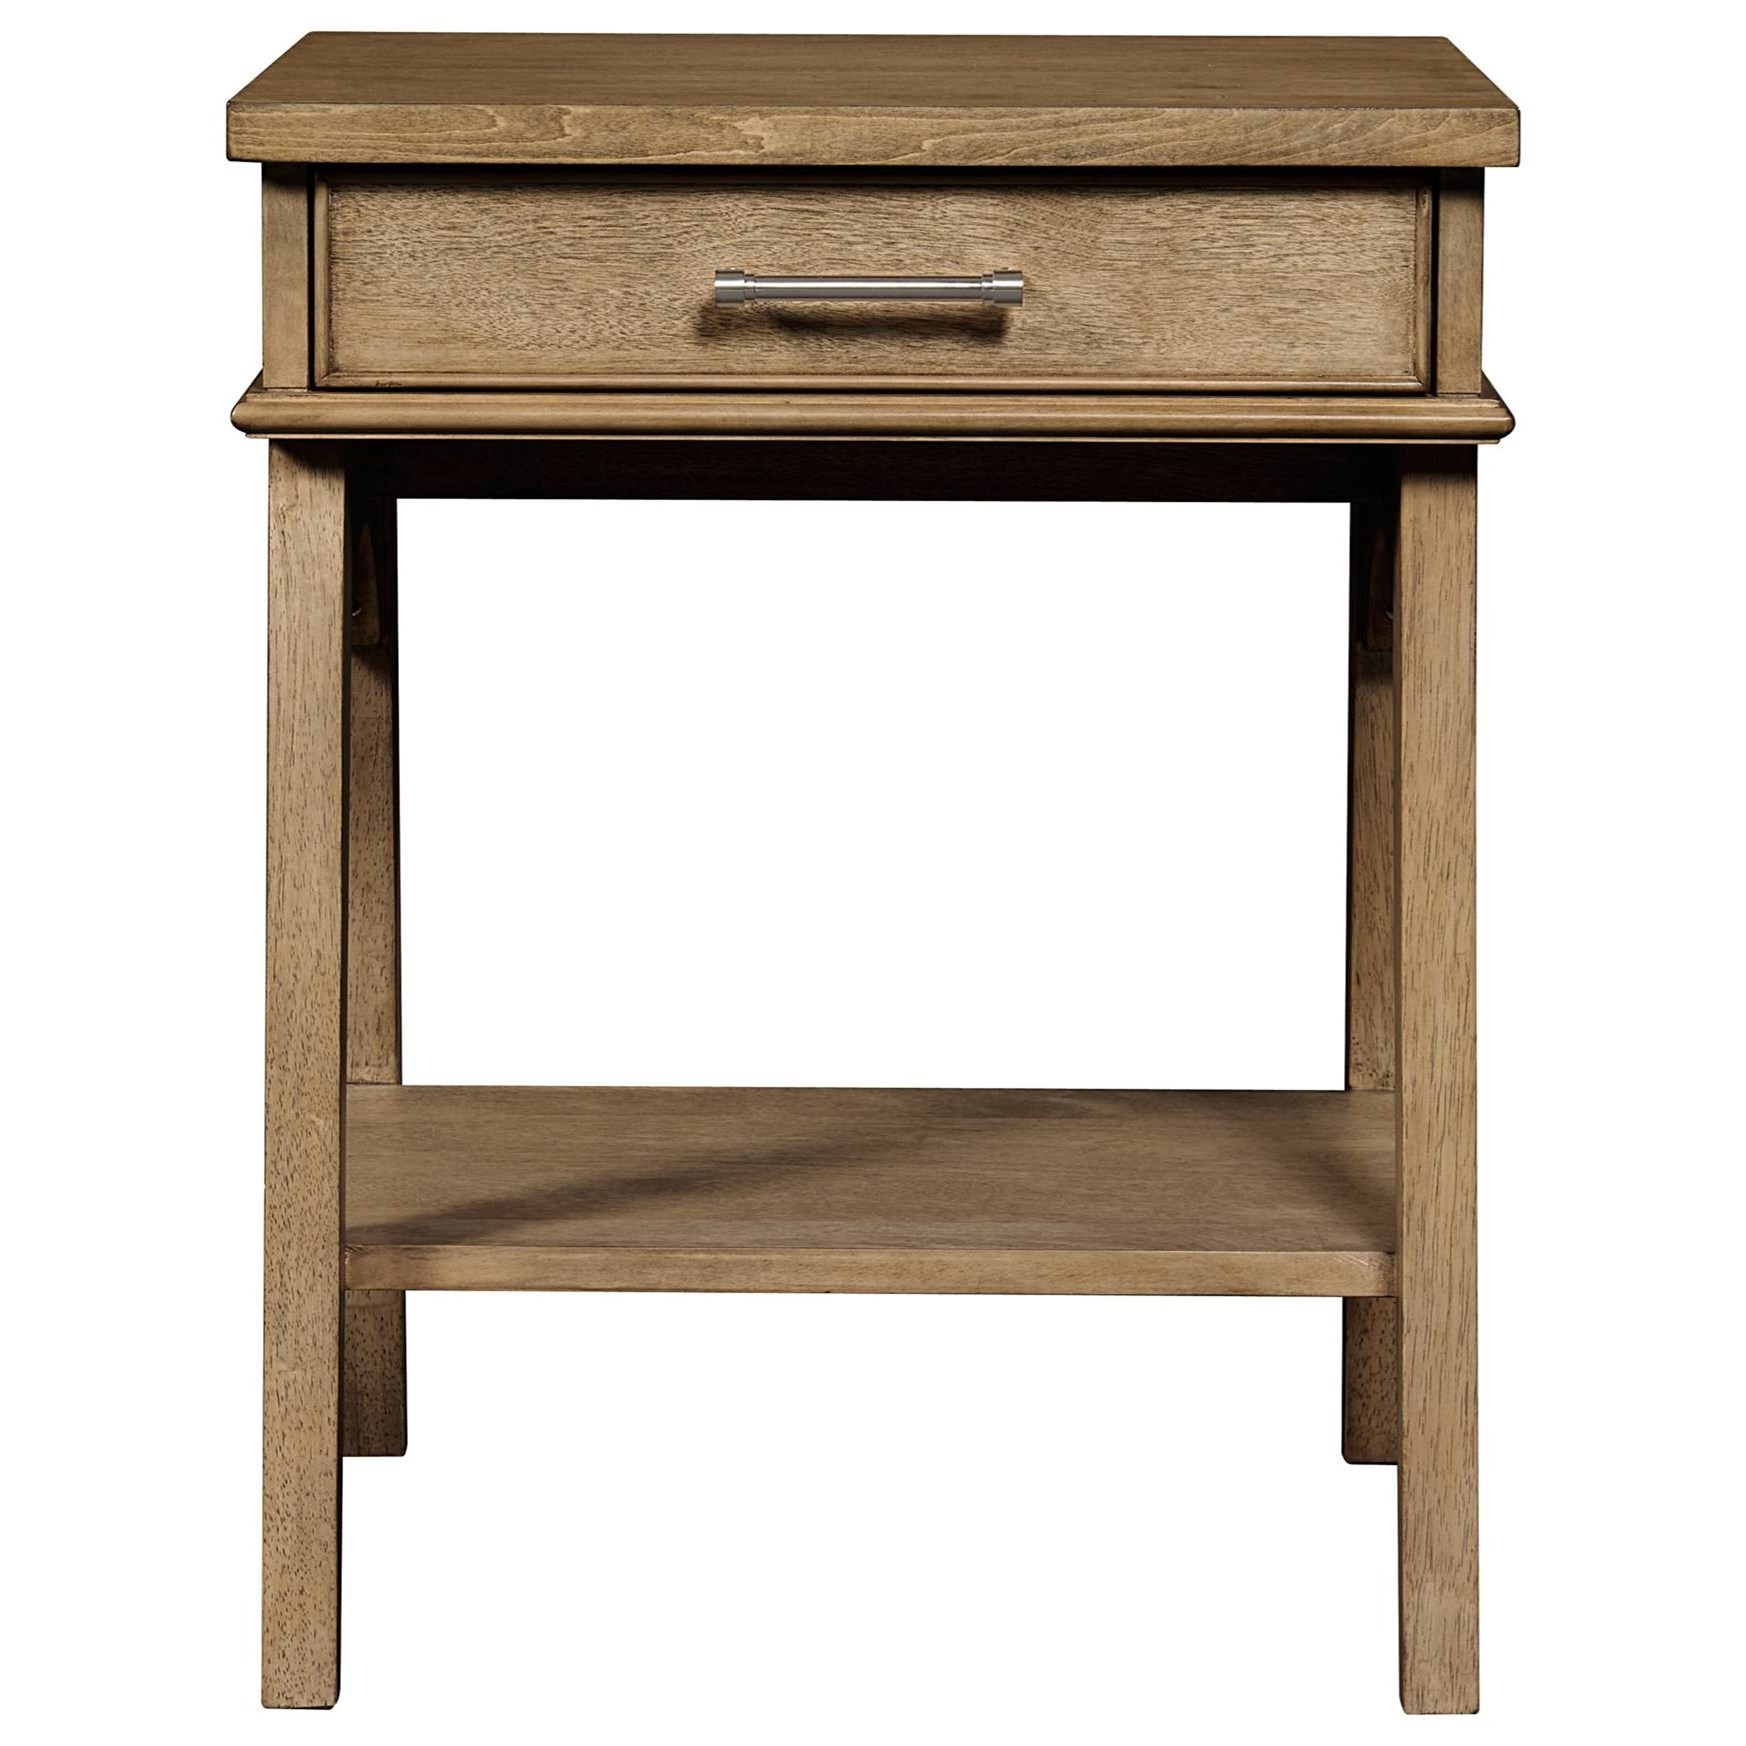 Stone & Leigh Furniture Chelsea Square Bedside Table - Item Number: 584-63-80